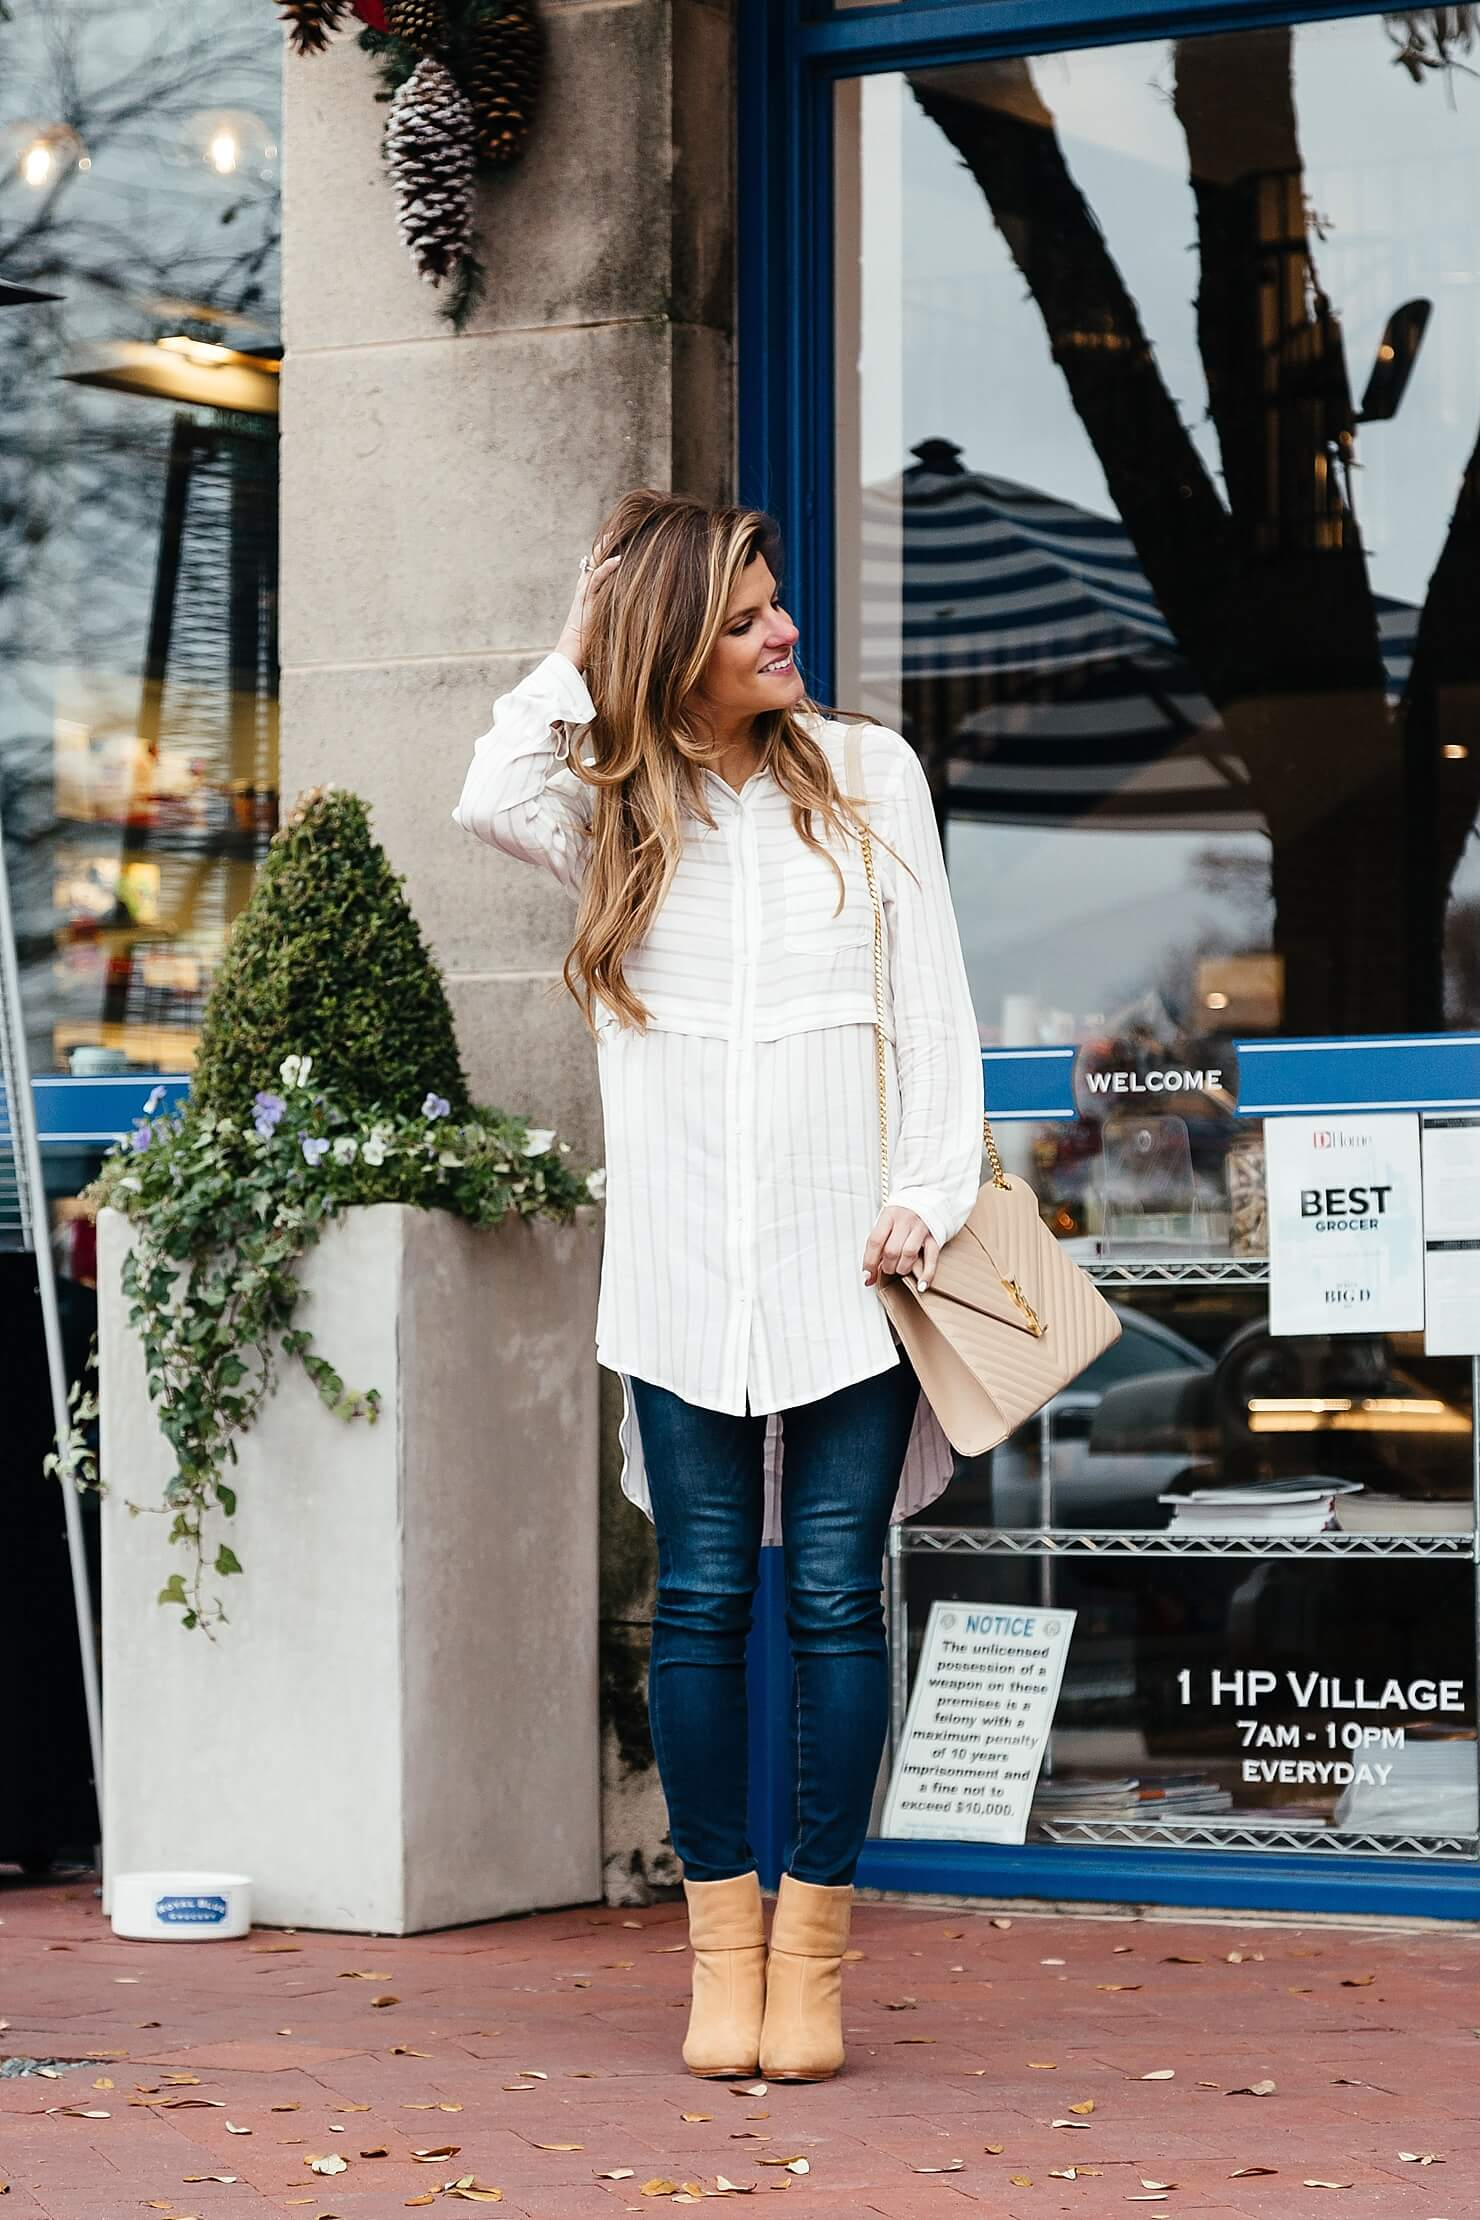 brighton the day button up tunic and jeans with brown booties